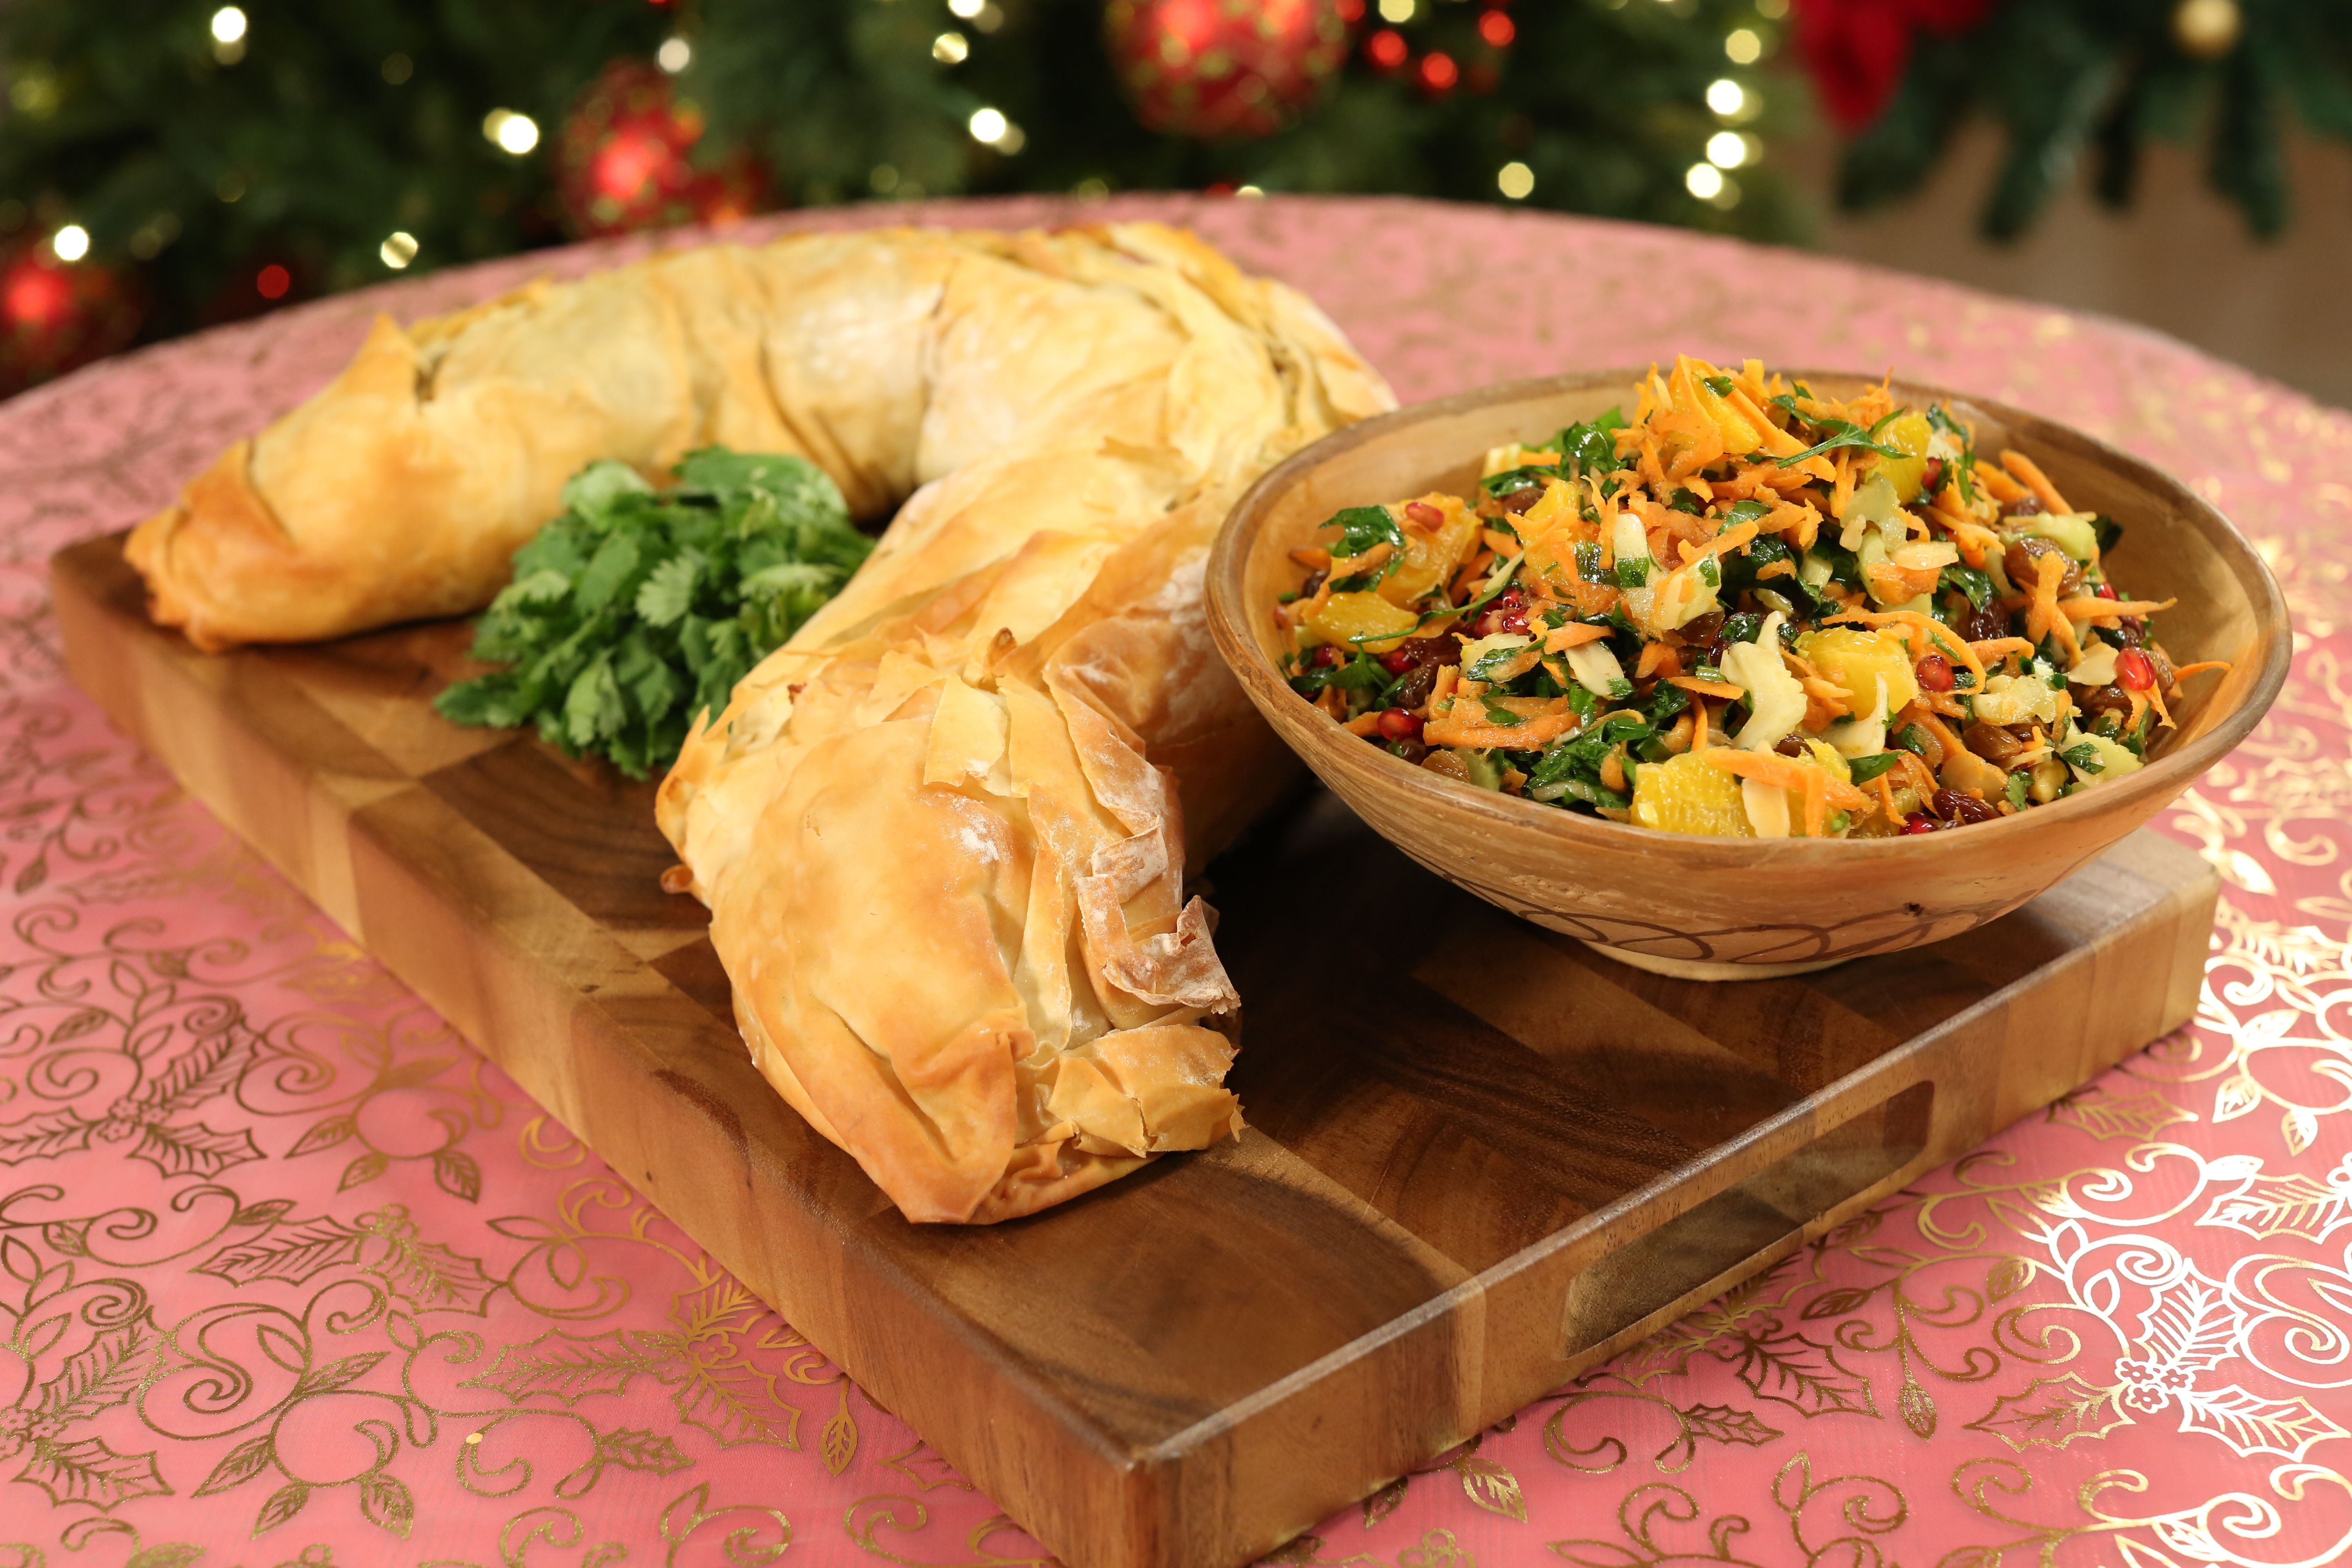 John whaites moroccan vegetable strudel jeni barnetts 12 chefs this dish is a great vegetarian option for a christmas day feast while best assembled and eaten the same day the filling can be made a day ahead forumfinder Images